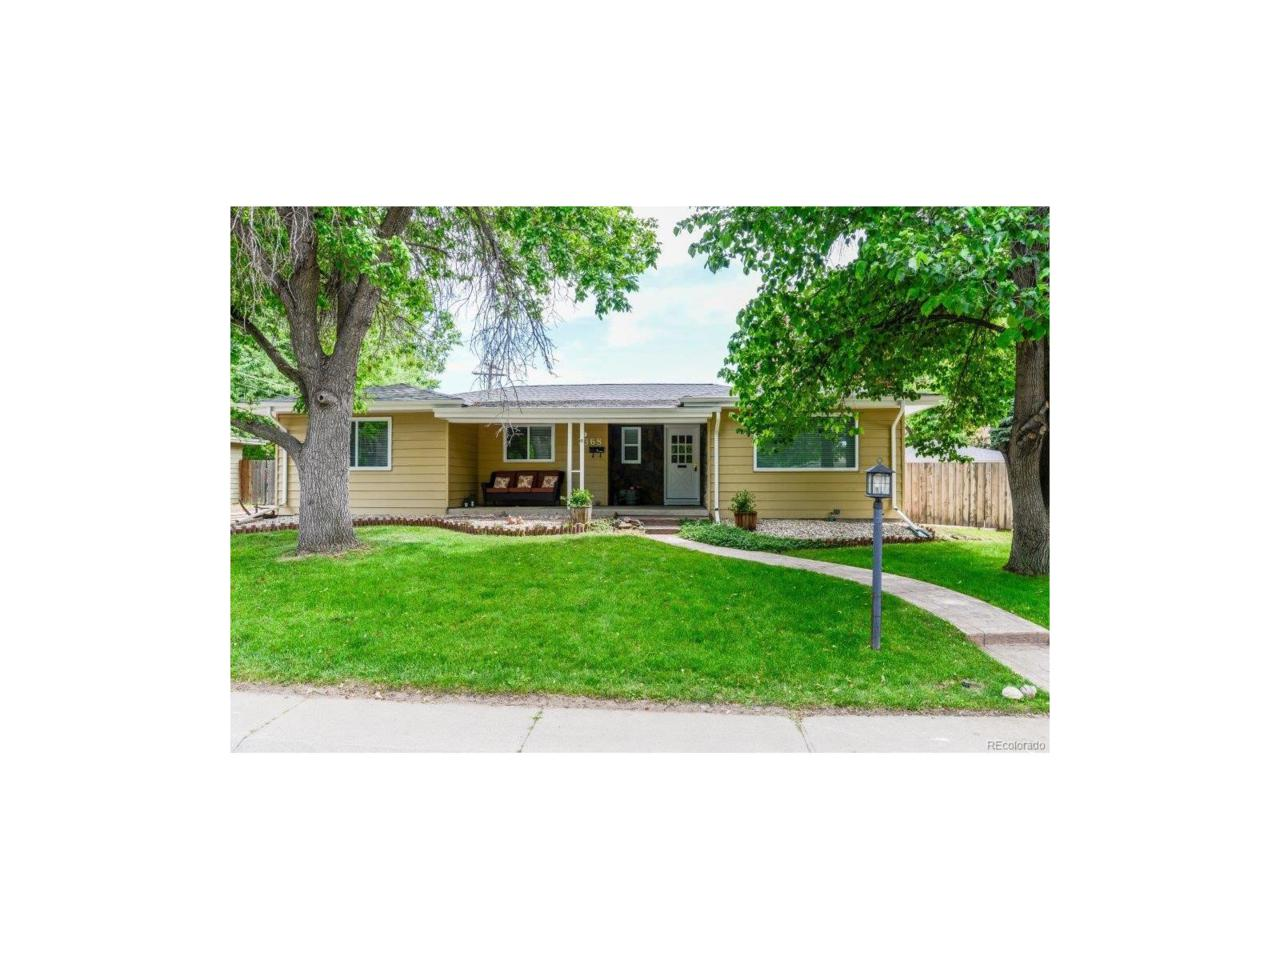 2368 E Floyd Place, Englewood, CO 80113 (MLS #3911887) :: 8z Real Estate